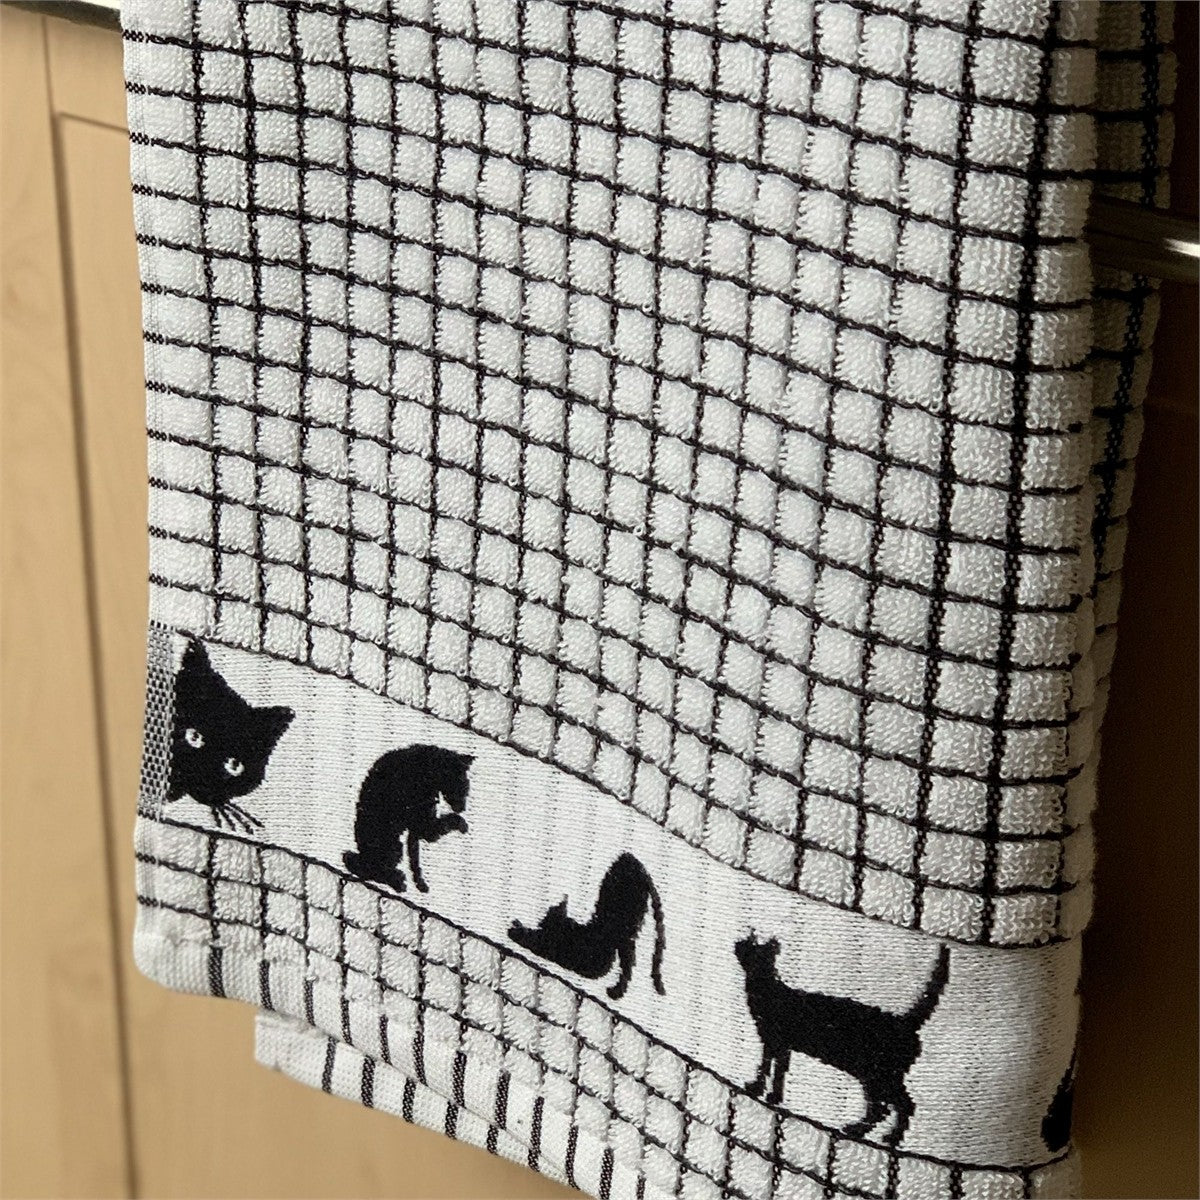 Black Cat poli-dri tea towel